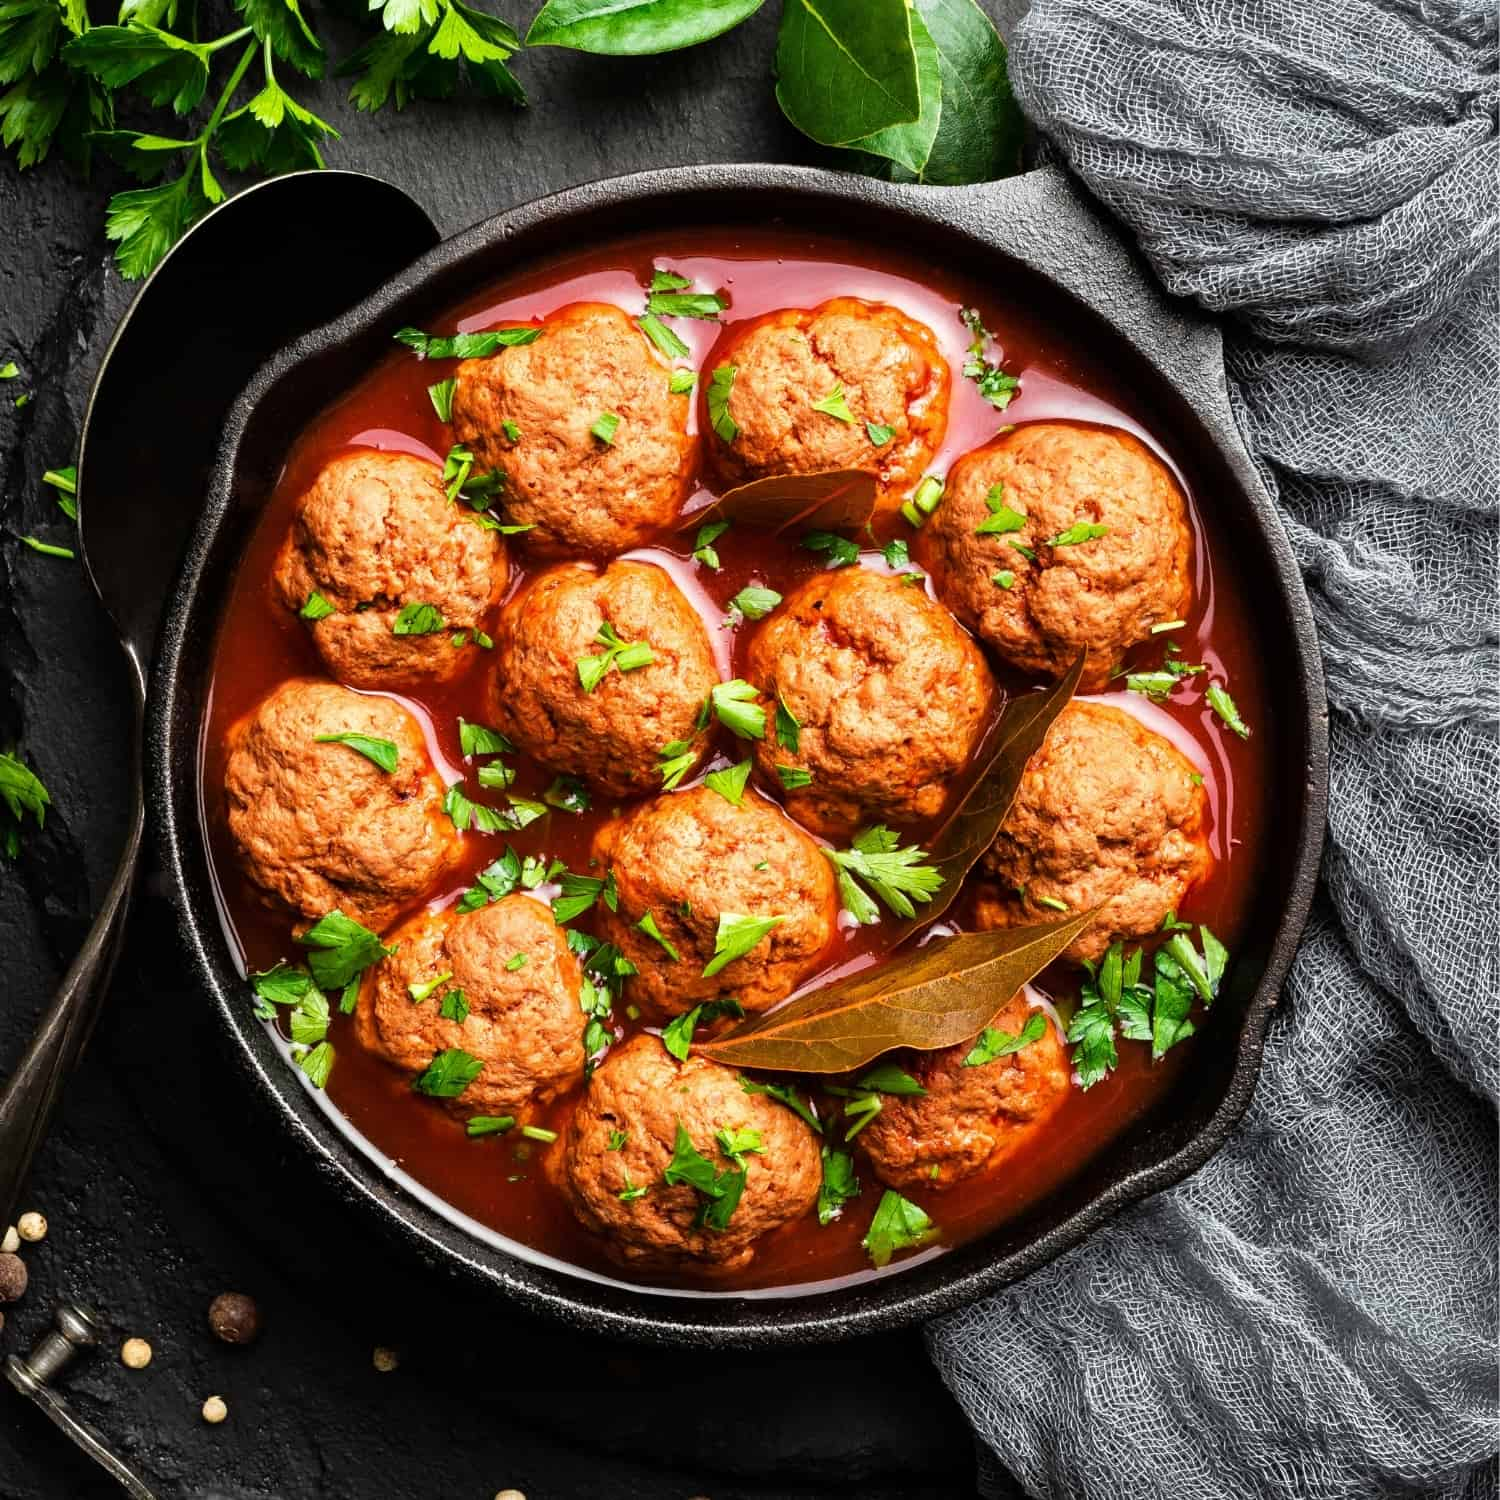 The Meat Club meatballs in tomato sauce